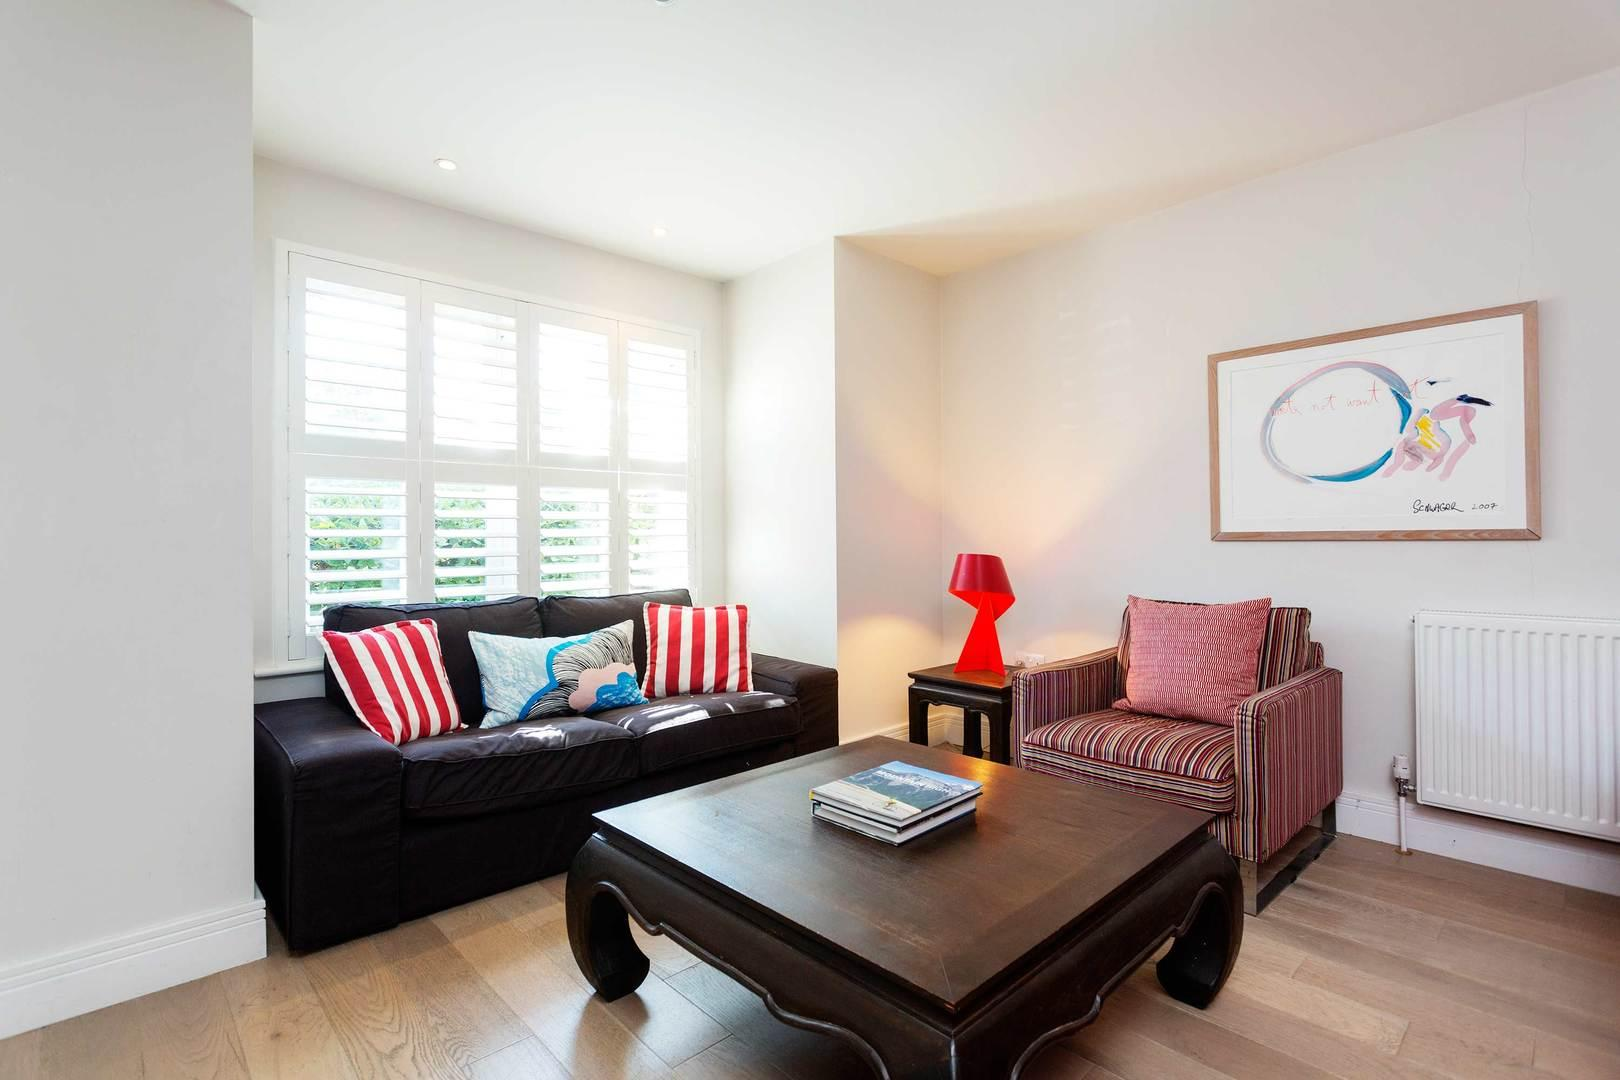 Property Image 1 - Bright Cosy Putney Family Home with Garden by the River